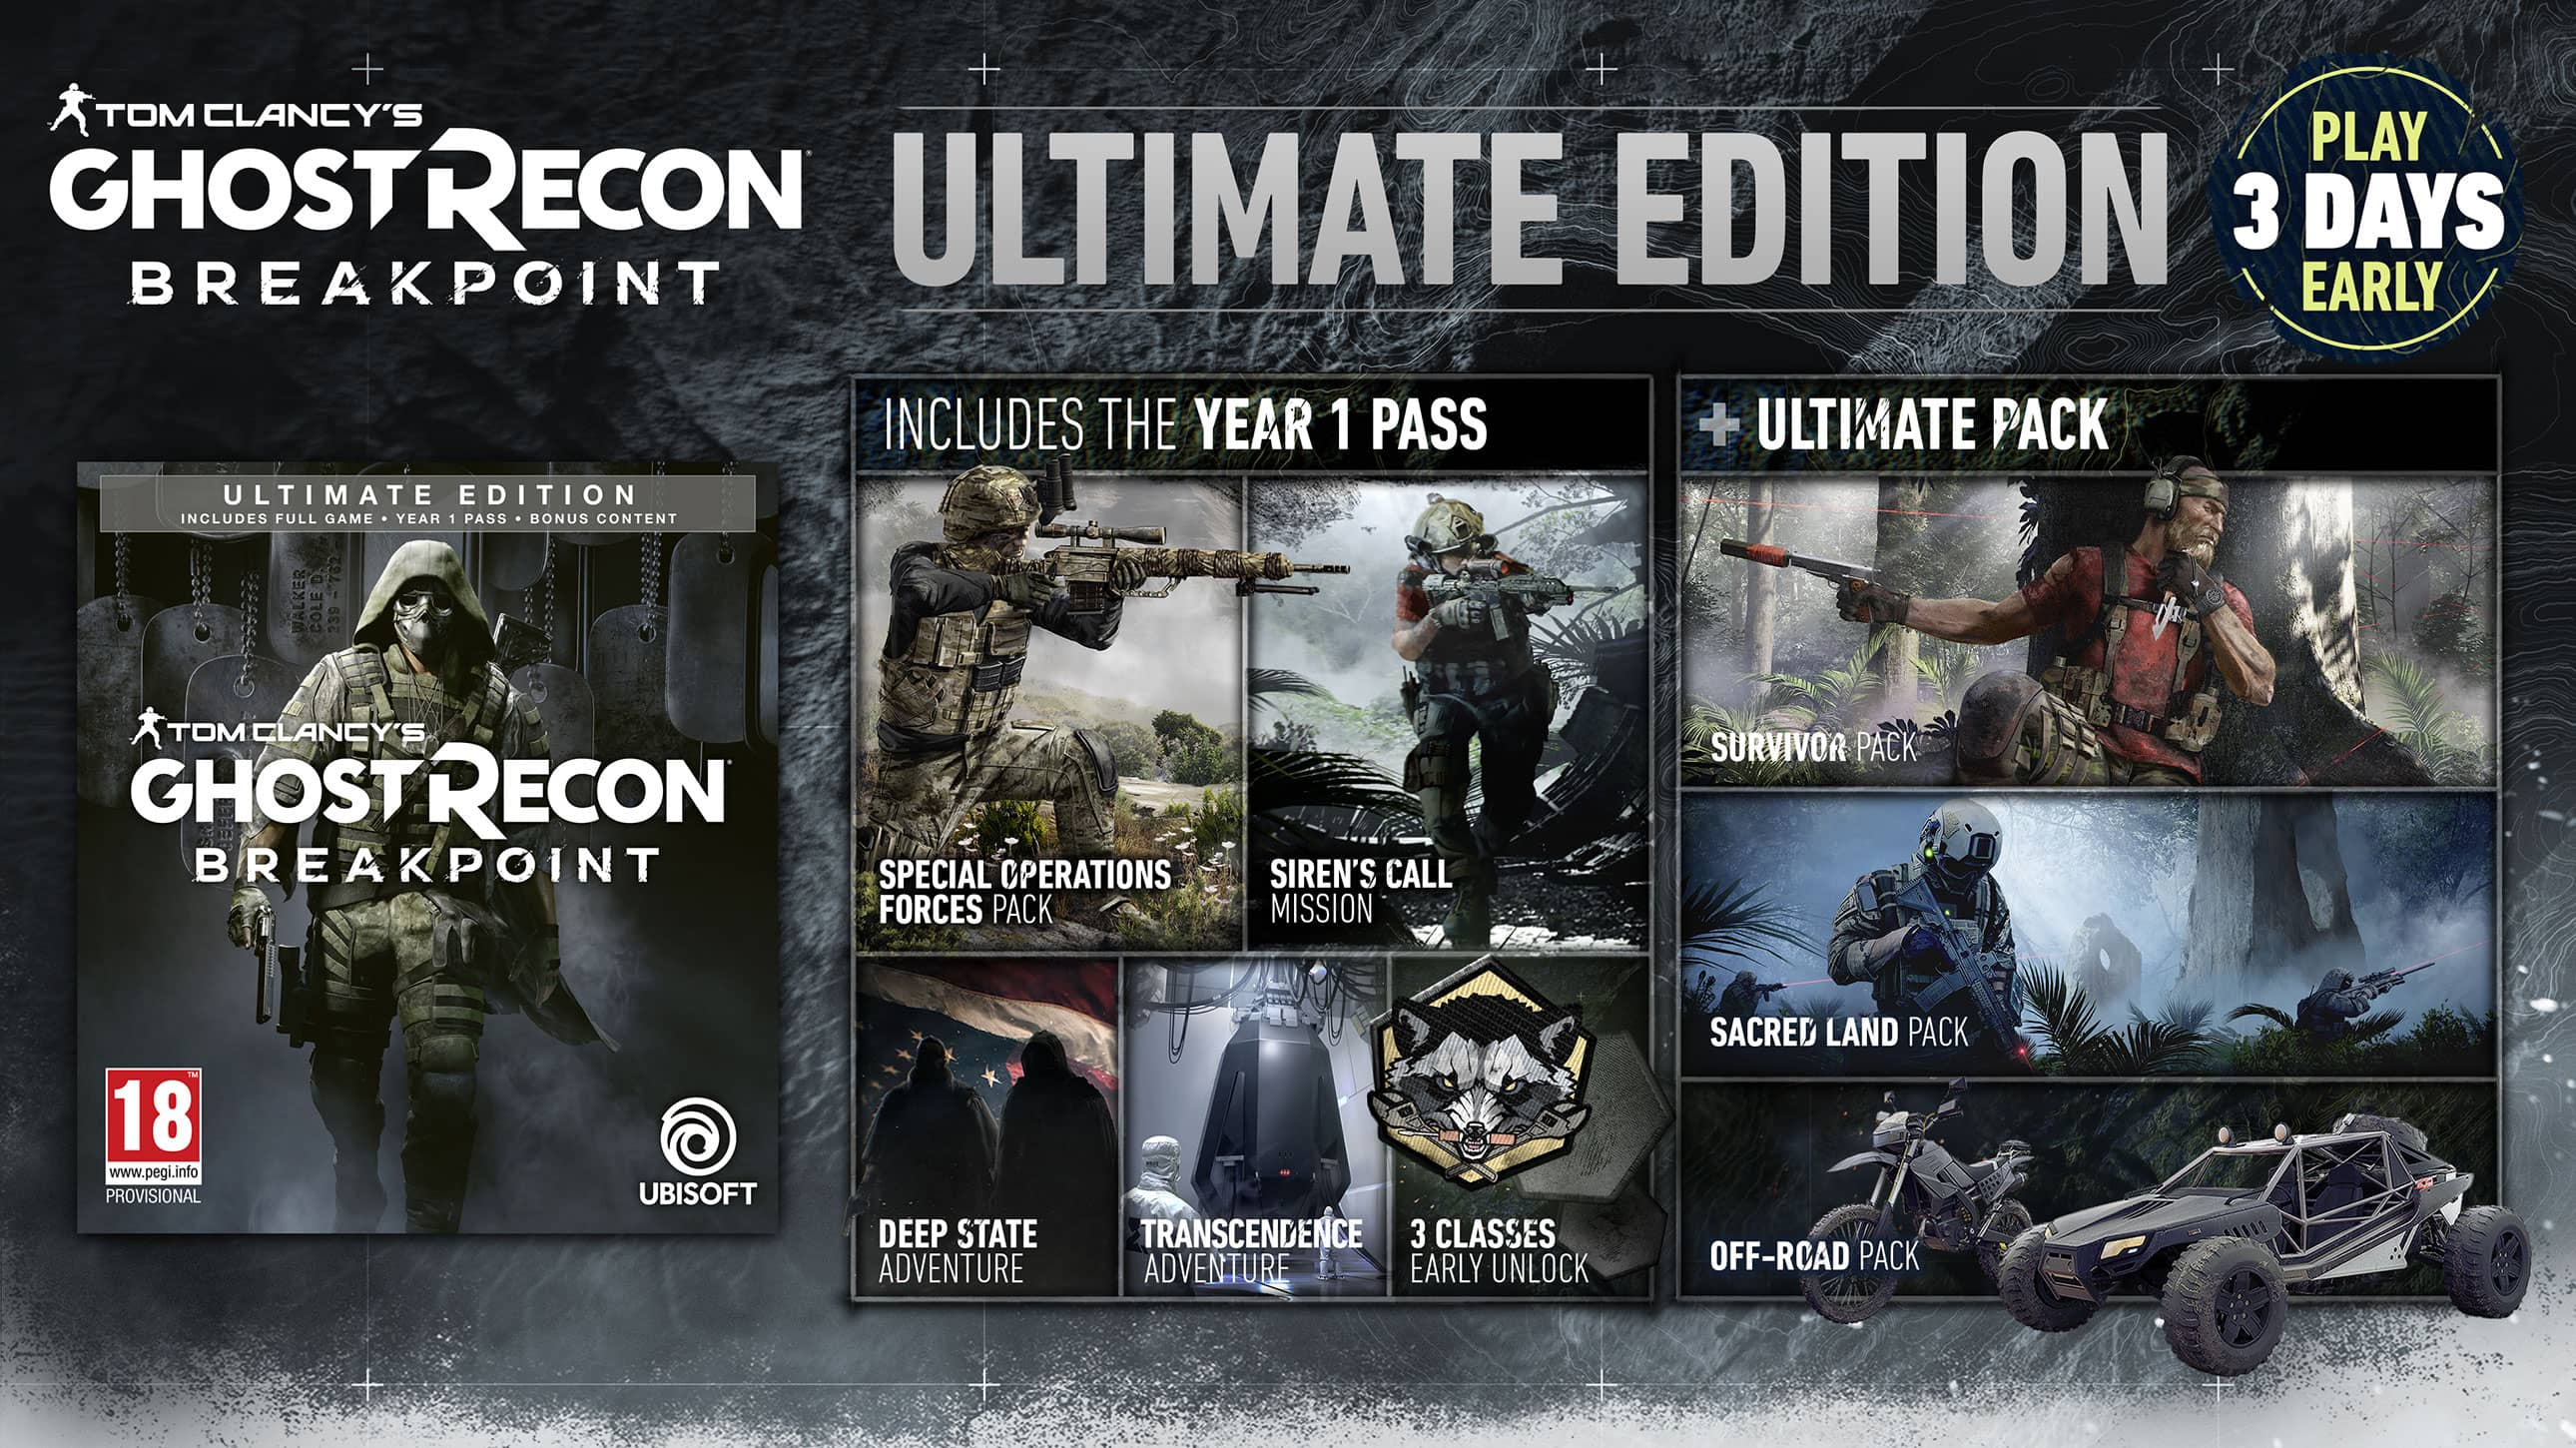 Ultimate Edition - Ultimate Edition